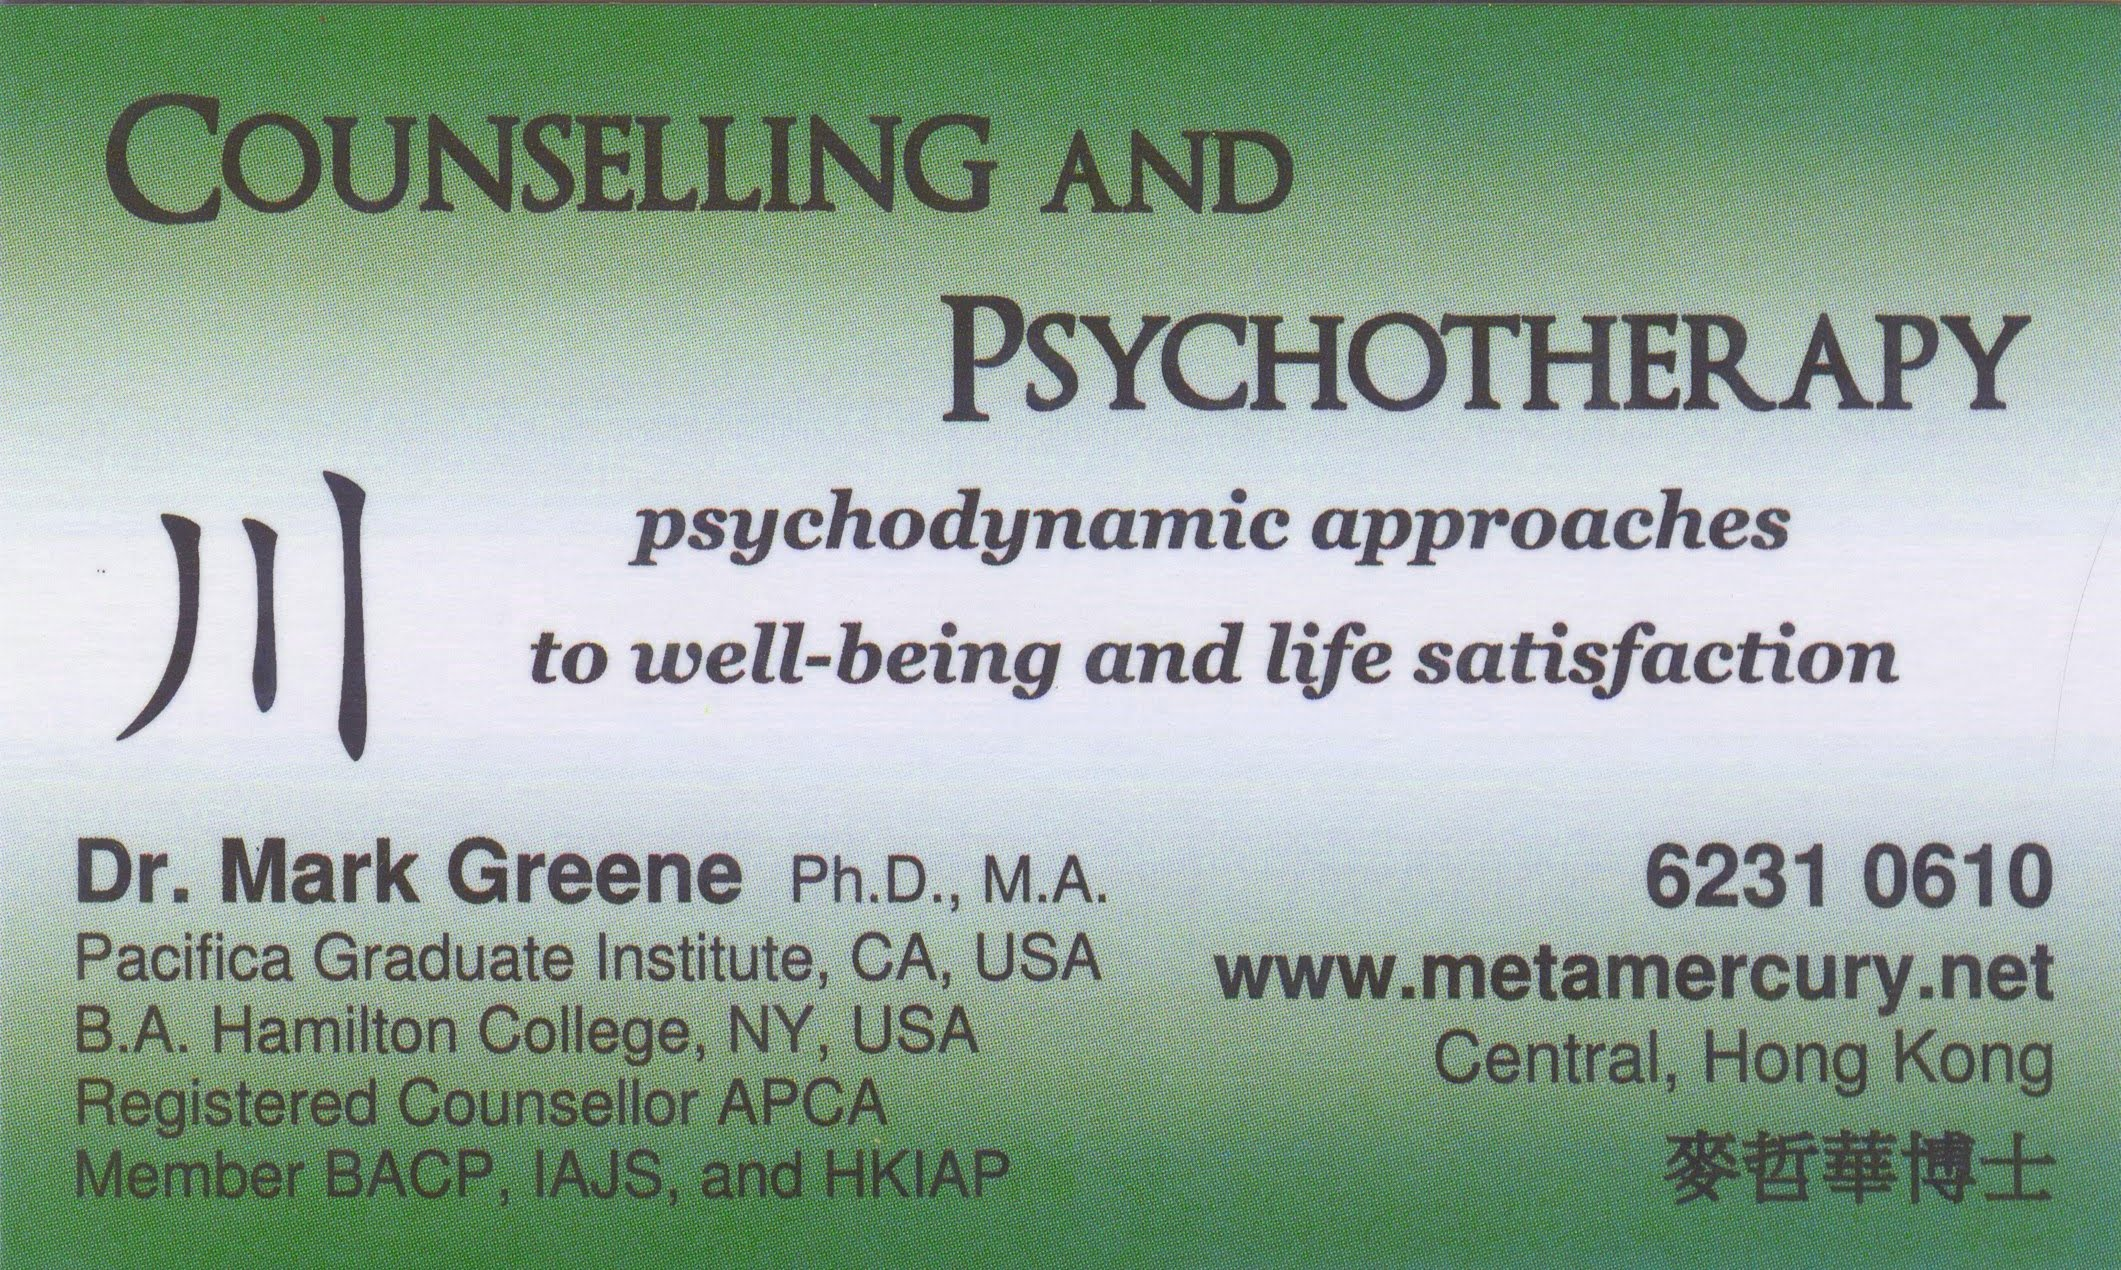 business card counselling and psychotherapy